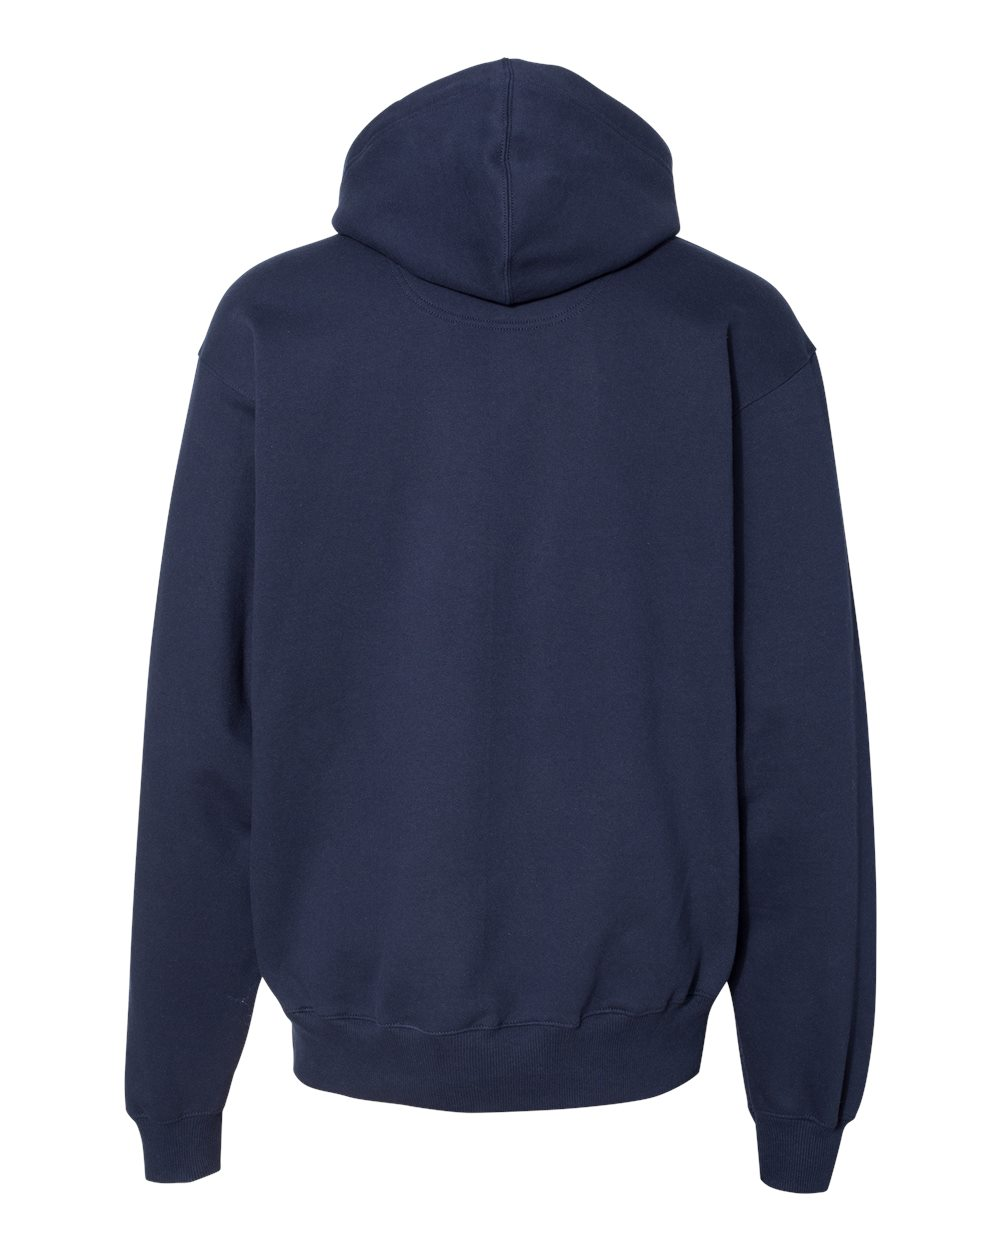 Champion-Mens-Cotton-Max-Hooded-Quarter-Zip-Sweatshirt-Pullover-S185-up-to-3XL miniature 16